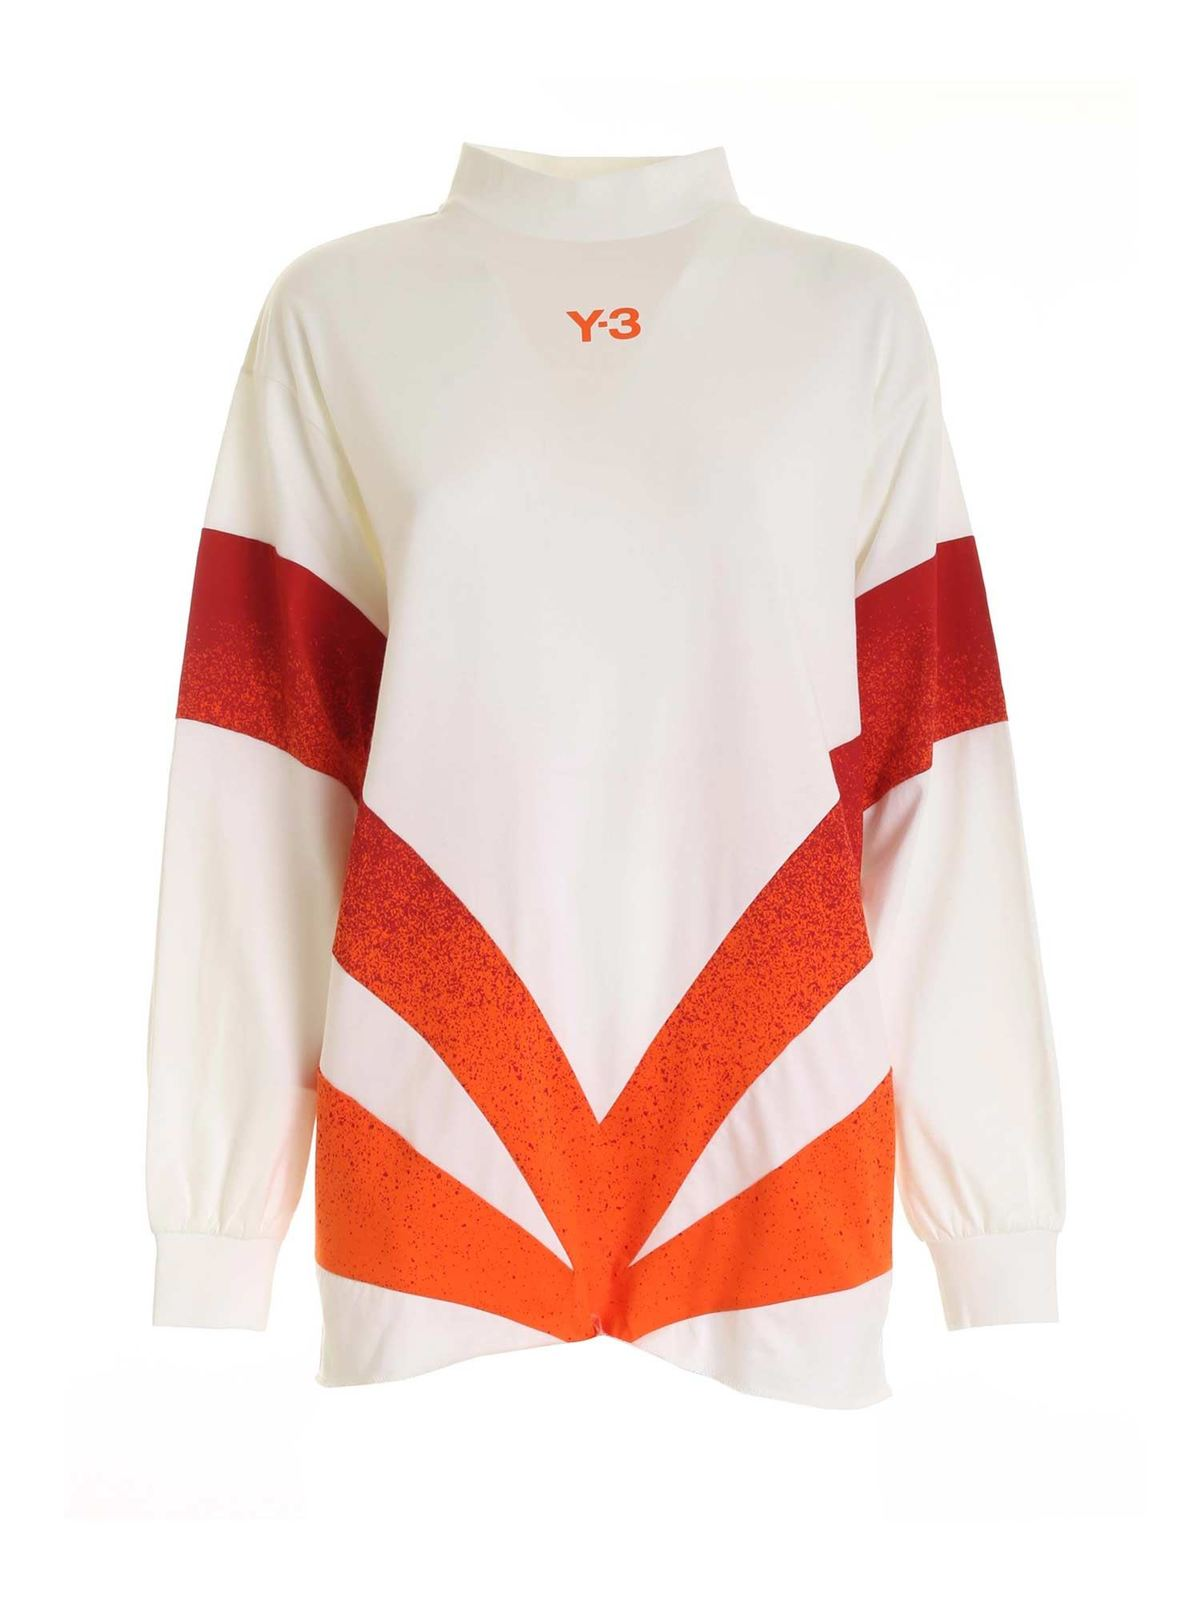 Y-3 CH2 LONG-SLEEVES T-SHIRT IN CREAM COLOR